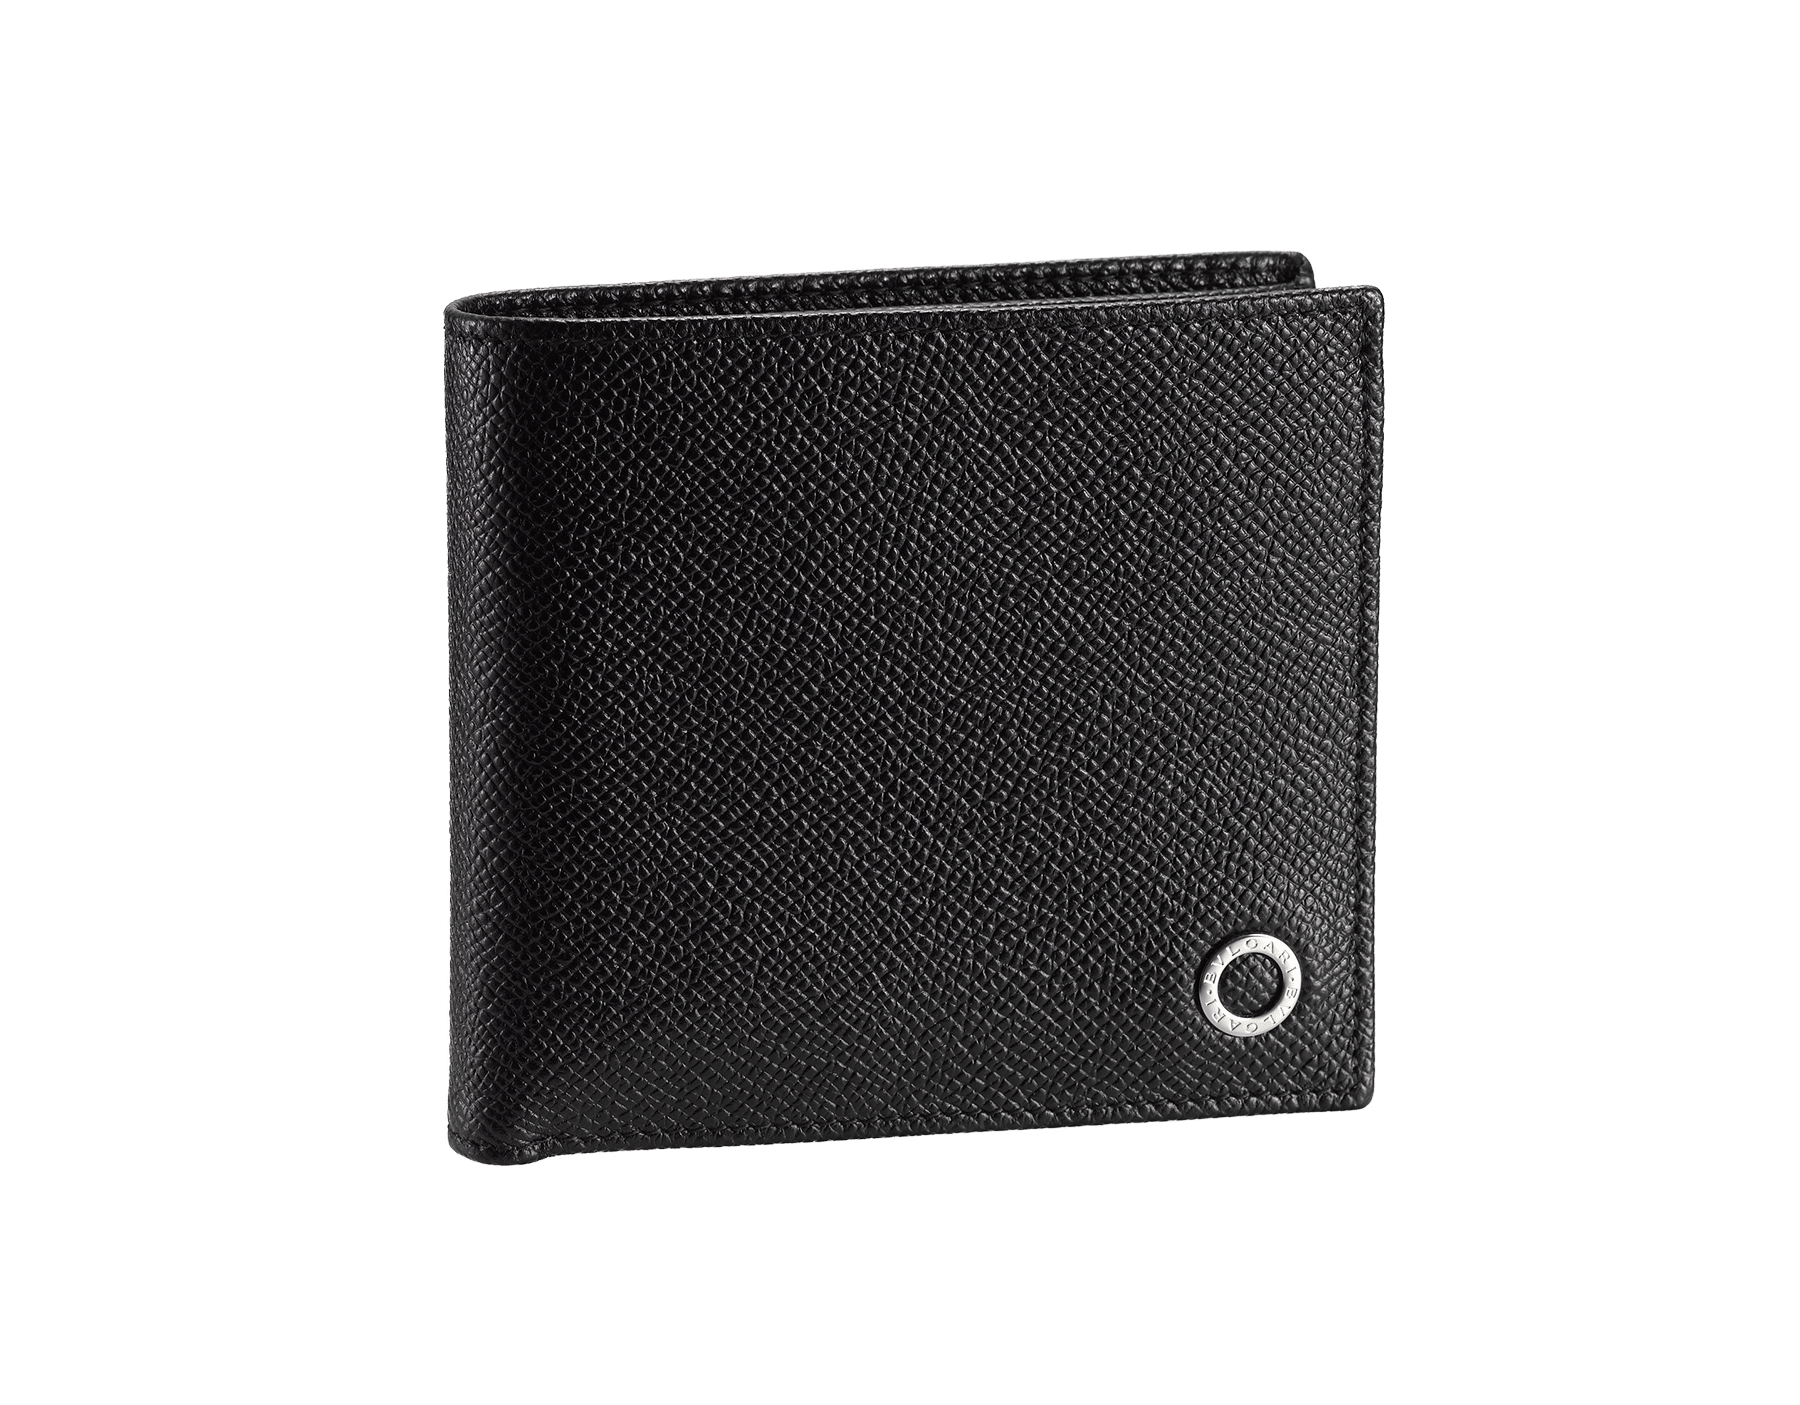 """BVLGARI BVLGARI"" compact wallet in Pluto Stone grey grained calf leather and Denim Sapphire blue grained calf leather. Iconic logo-bearing embellishment in palladium-plated brass. BBM-WLT-ITAL-gcl image 1"